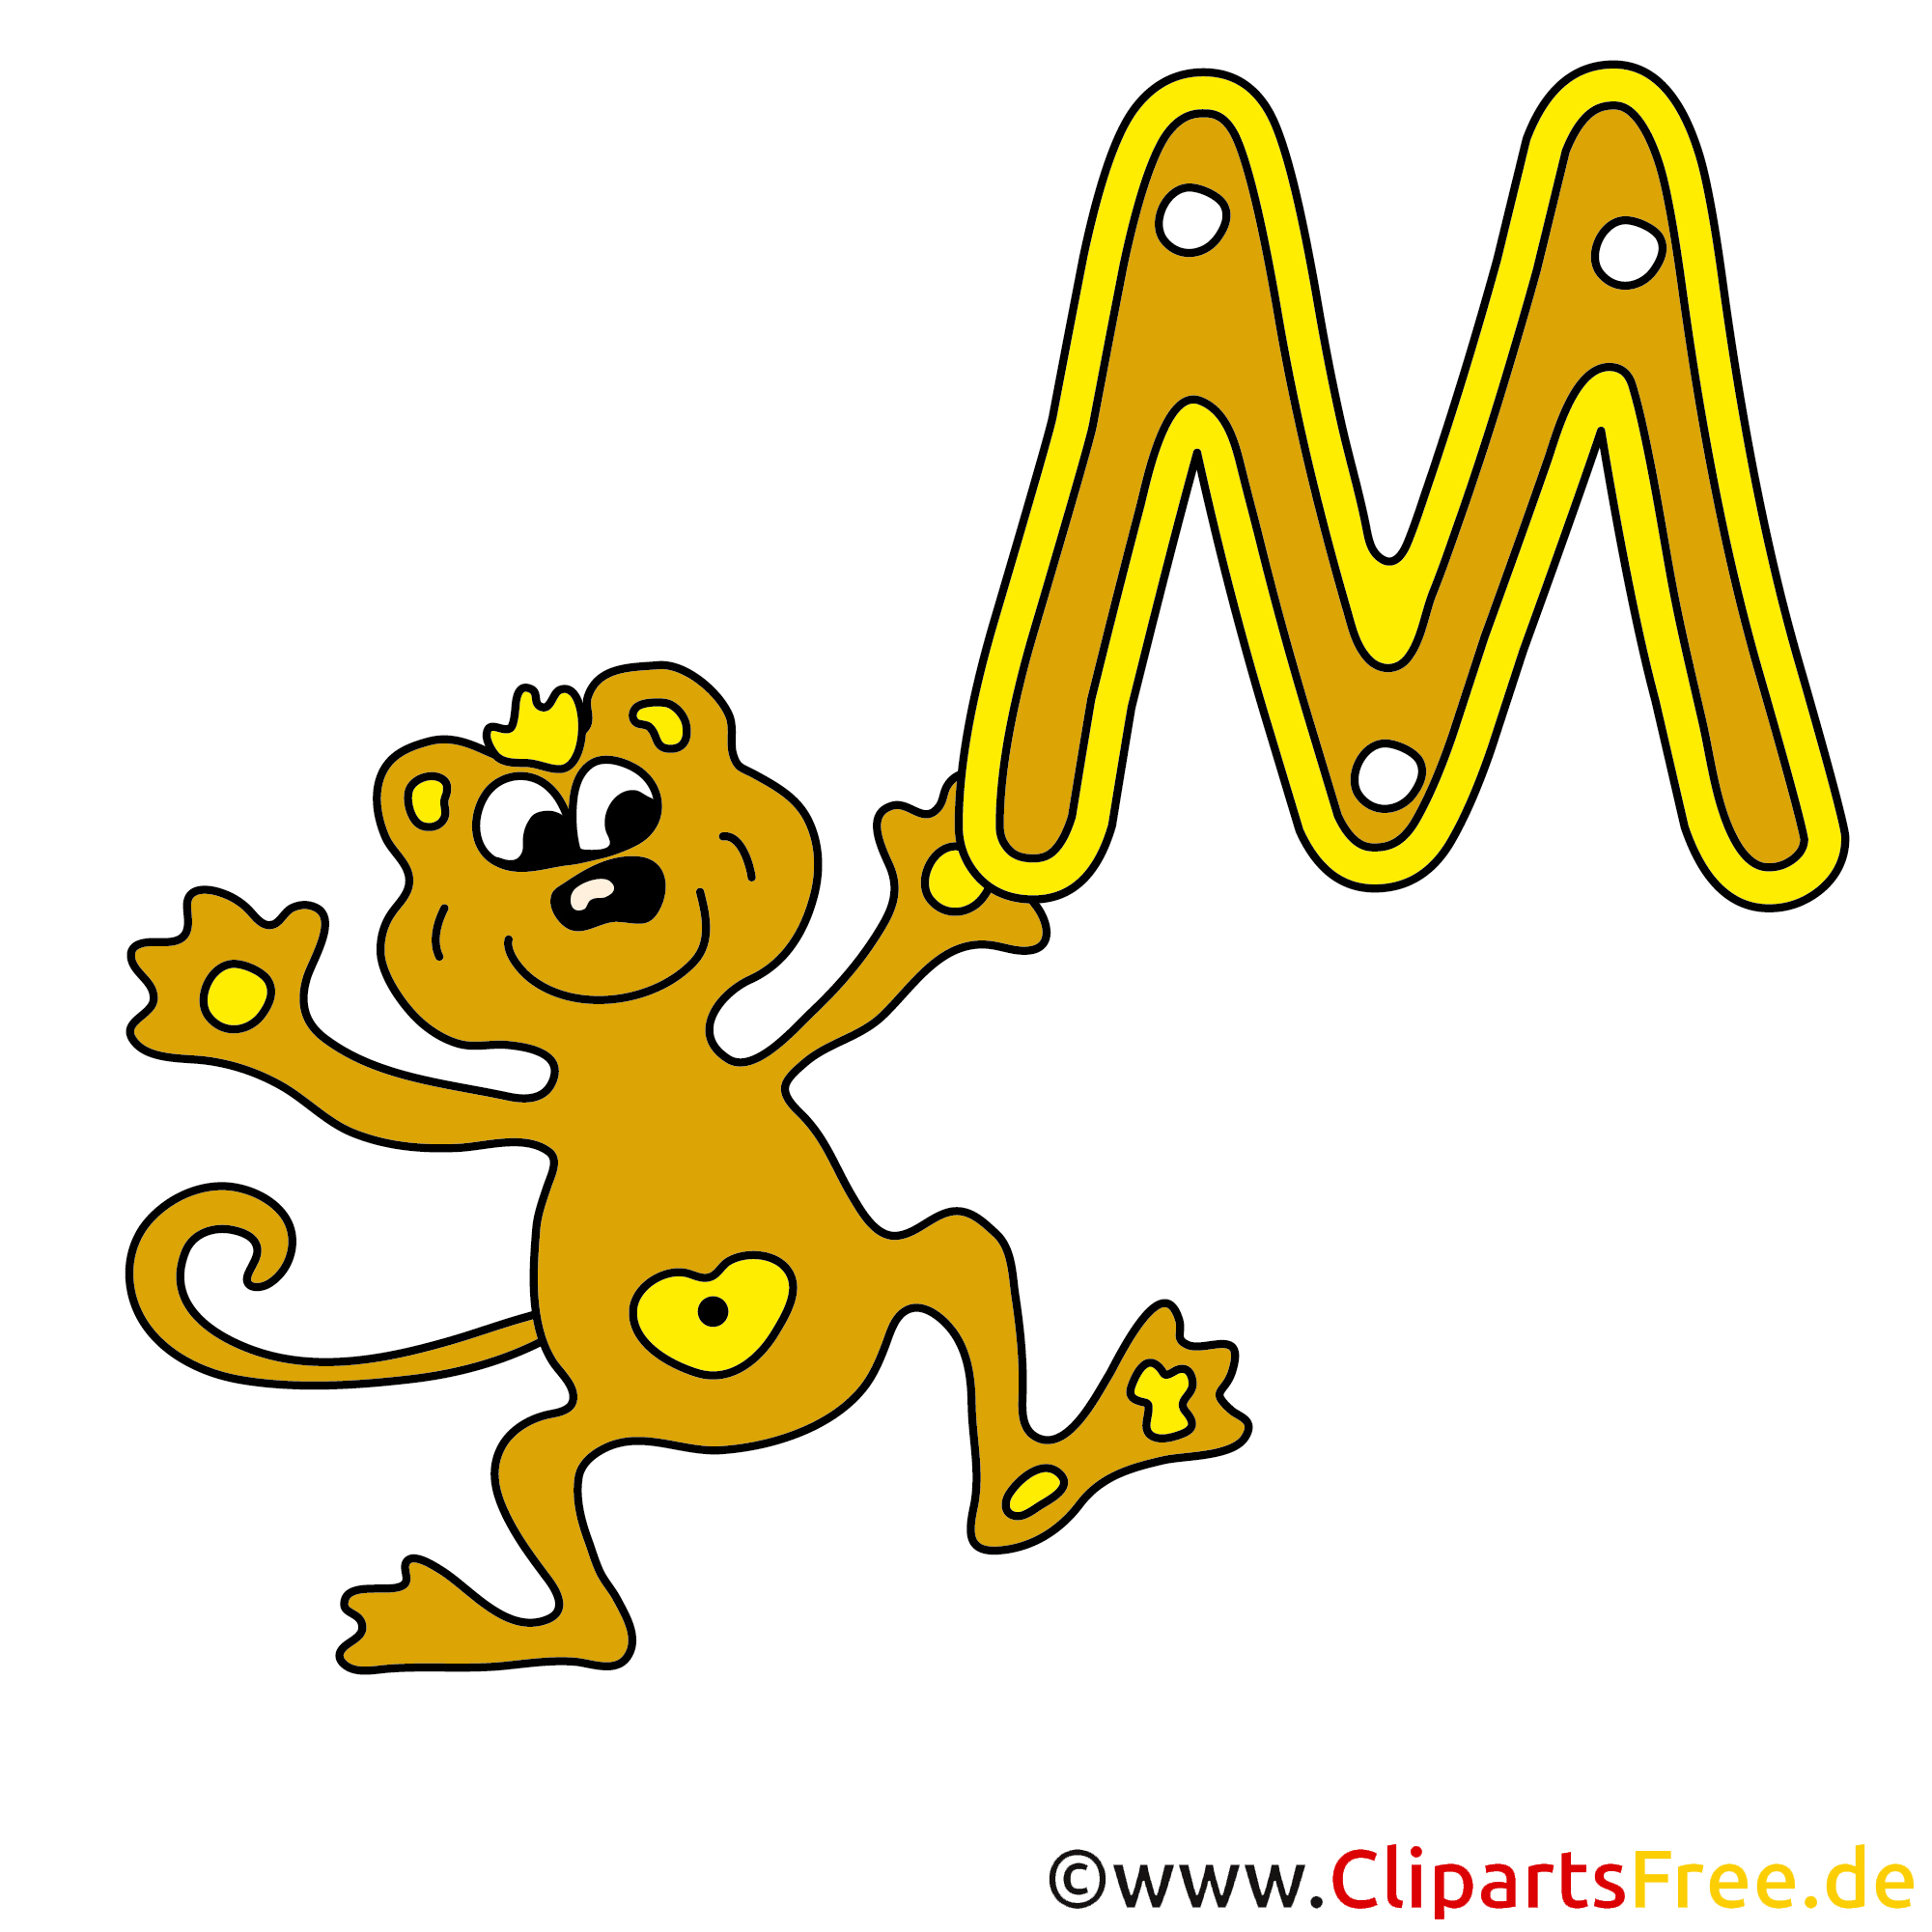 M is for Monkey - Alphabet Clipart